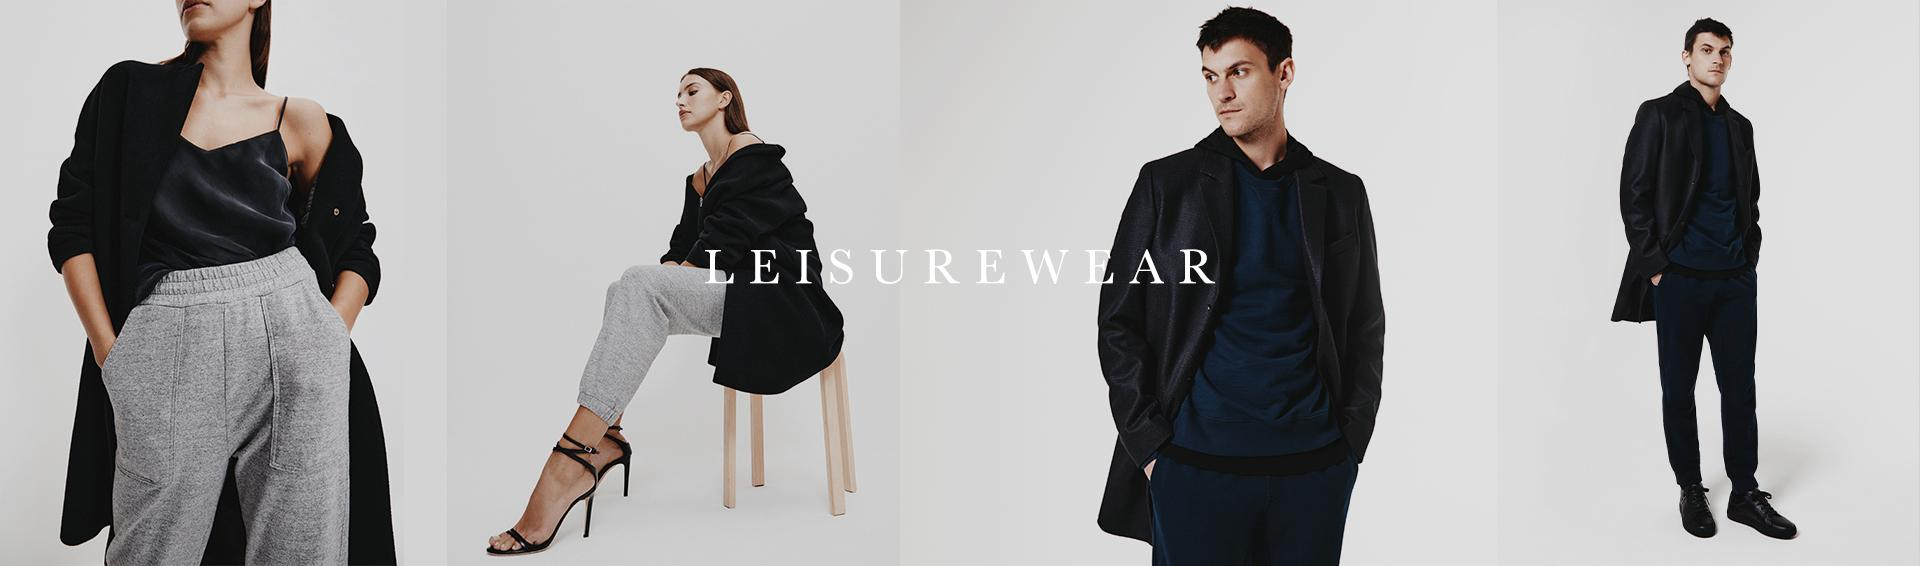 Our collection of leisurewear is designed in a sophisticatedly soft, AG-made terry.